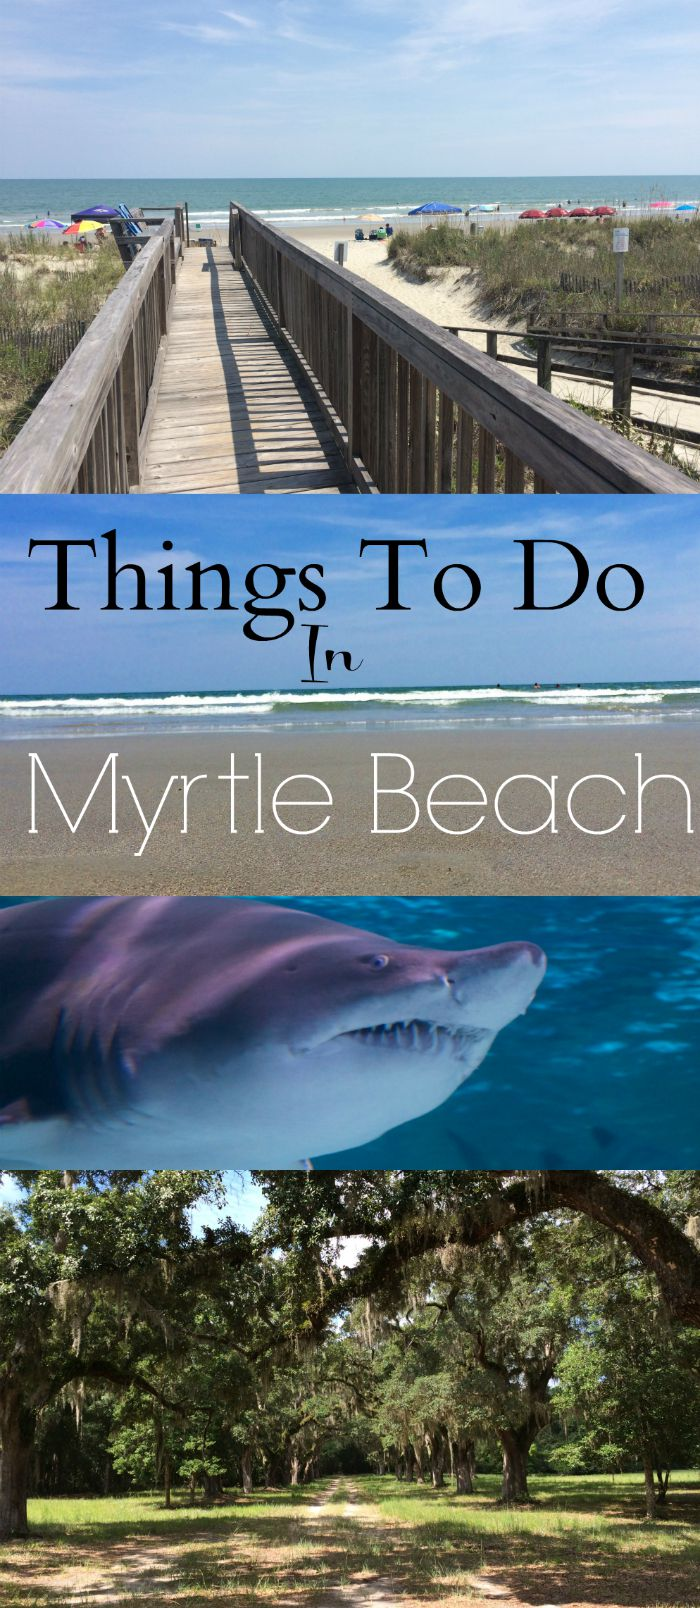 Things to do in myrtle beach south carolina for Cool things to do in charleston sc